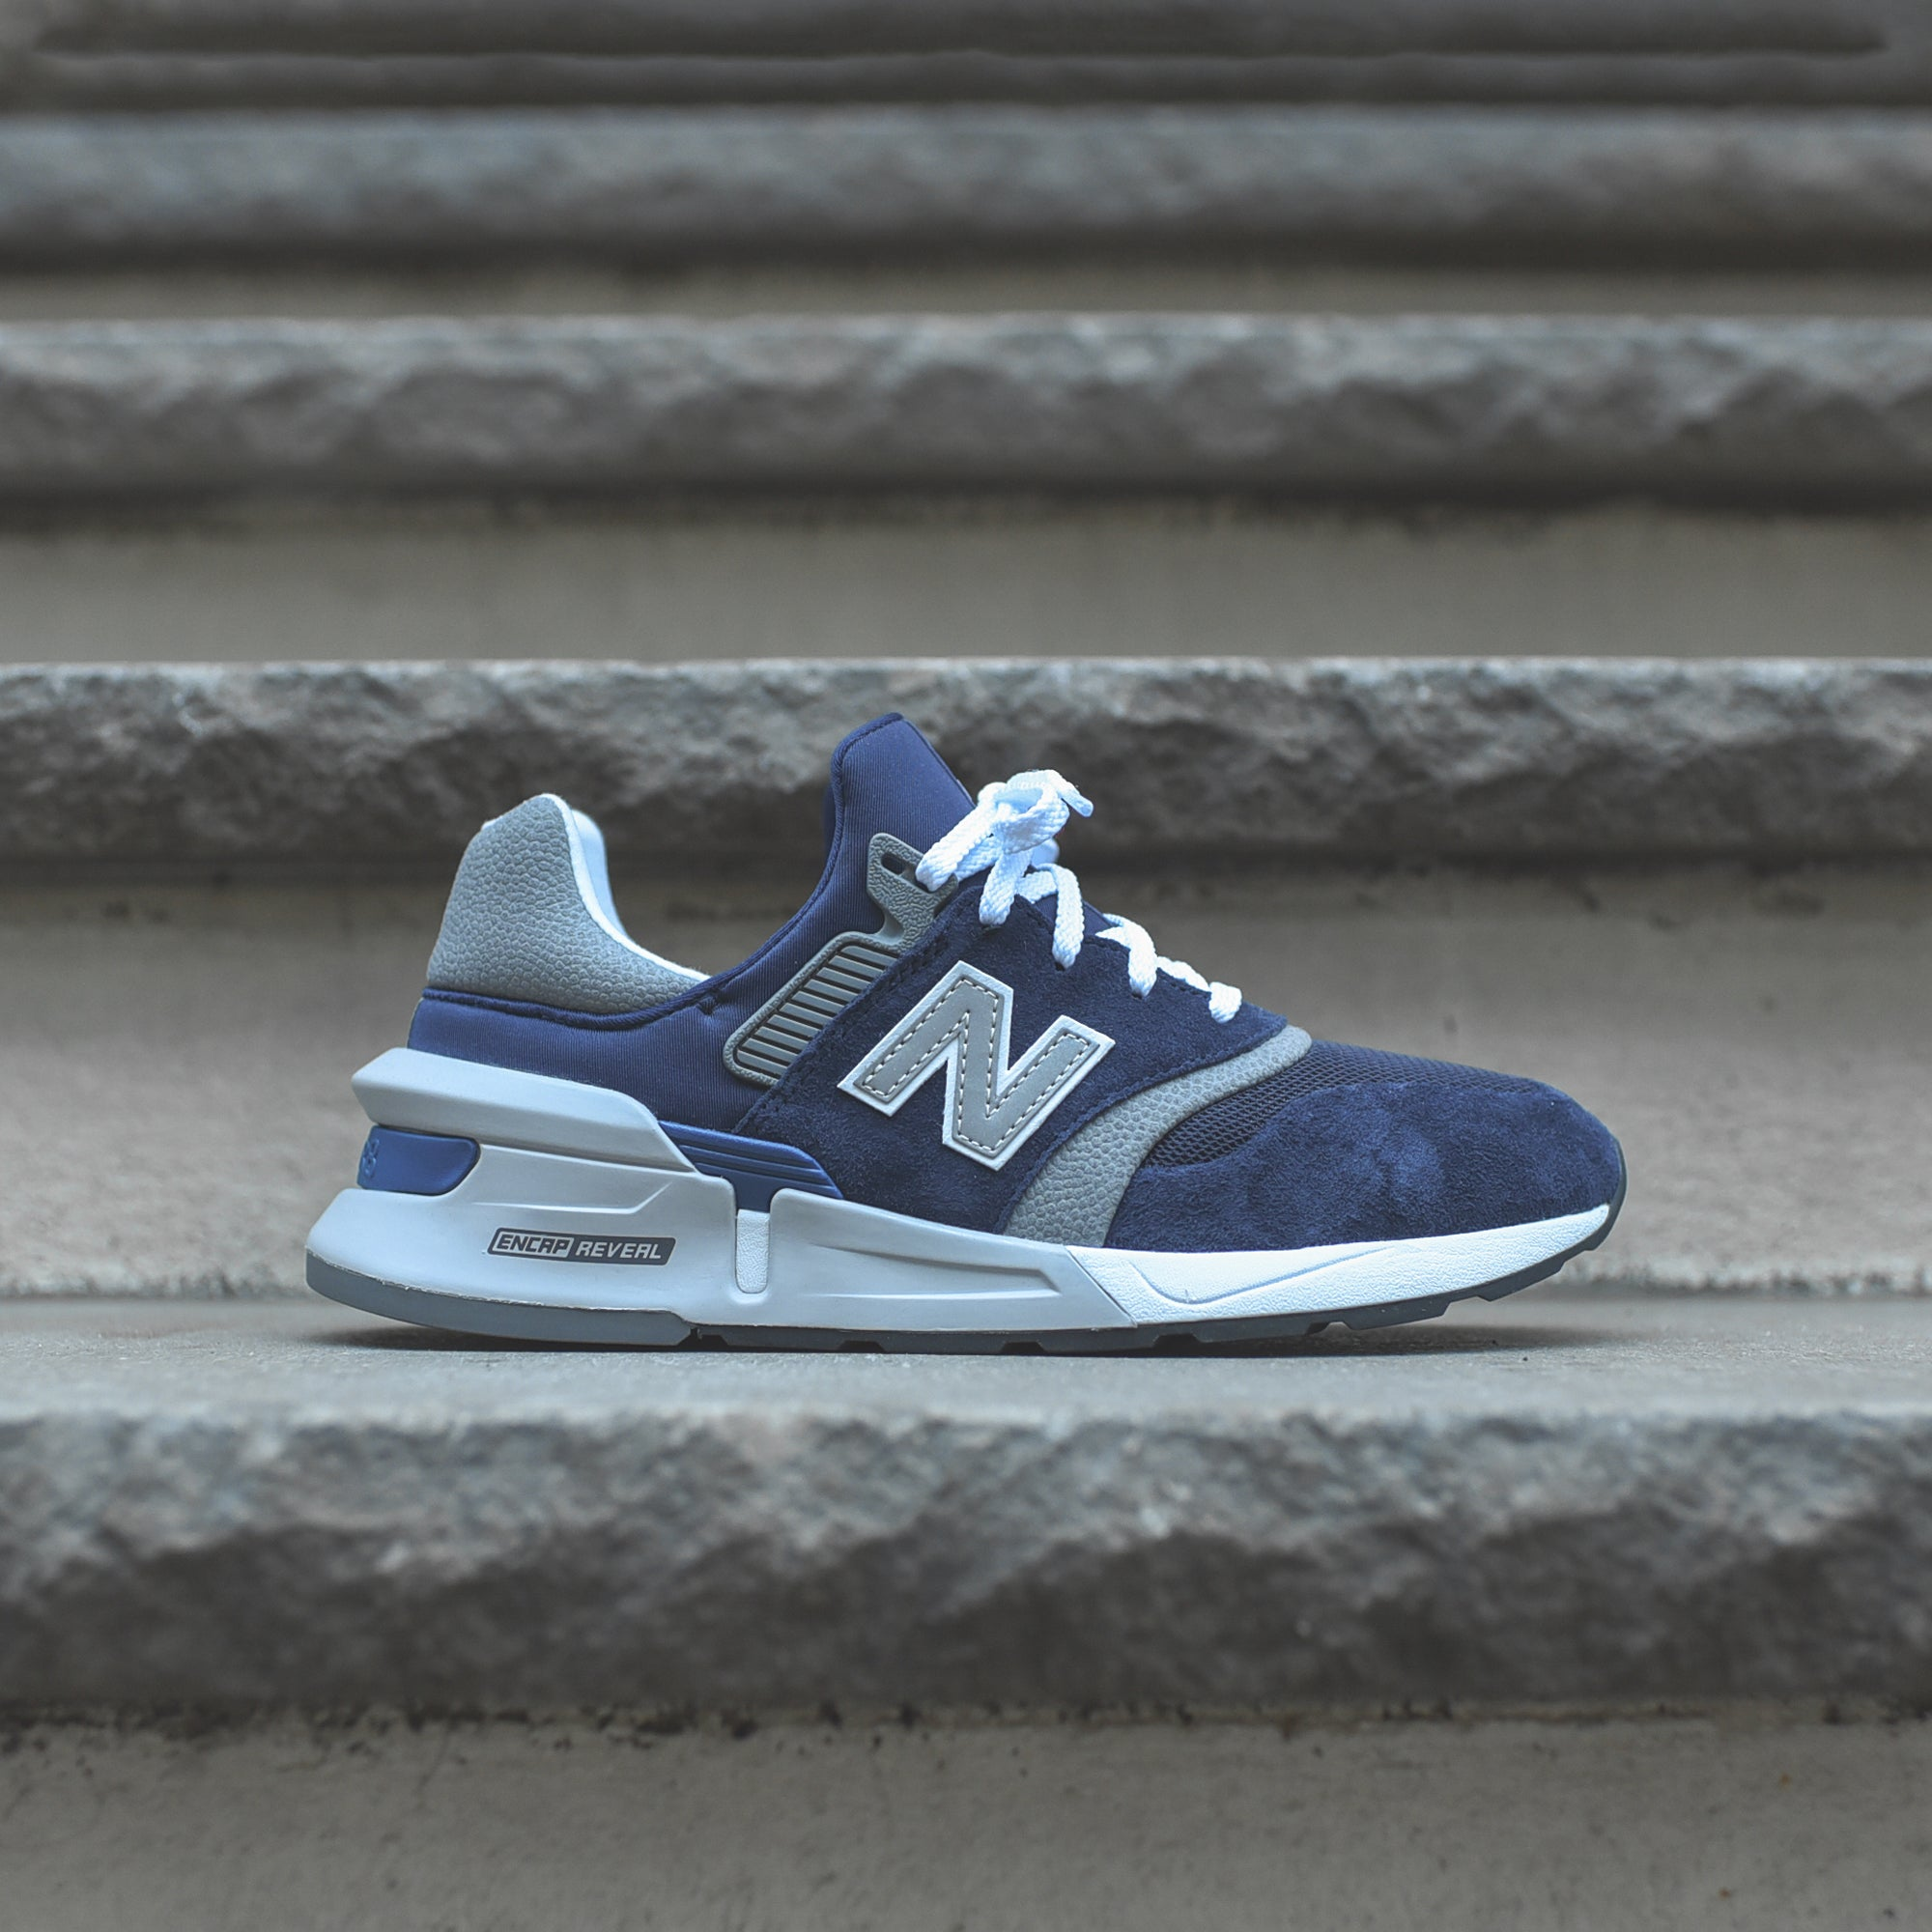 New Balance 997 Sport - Navy / Grey / White – Kith